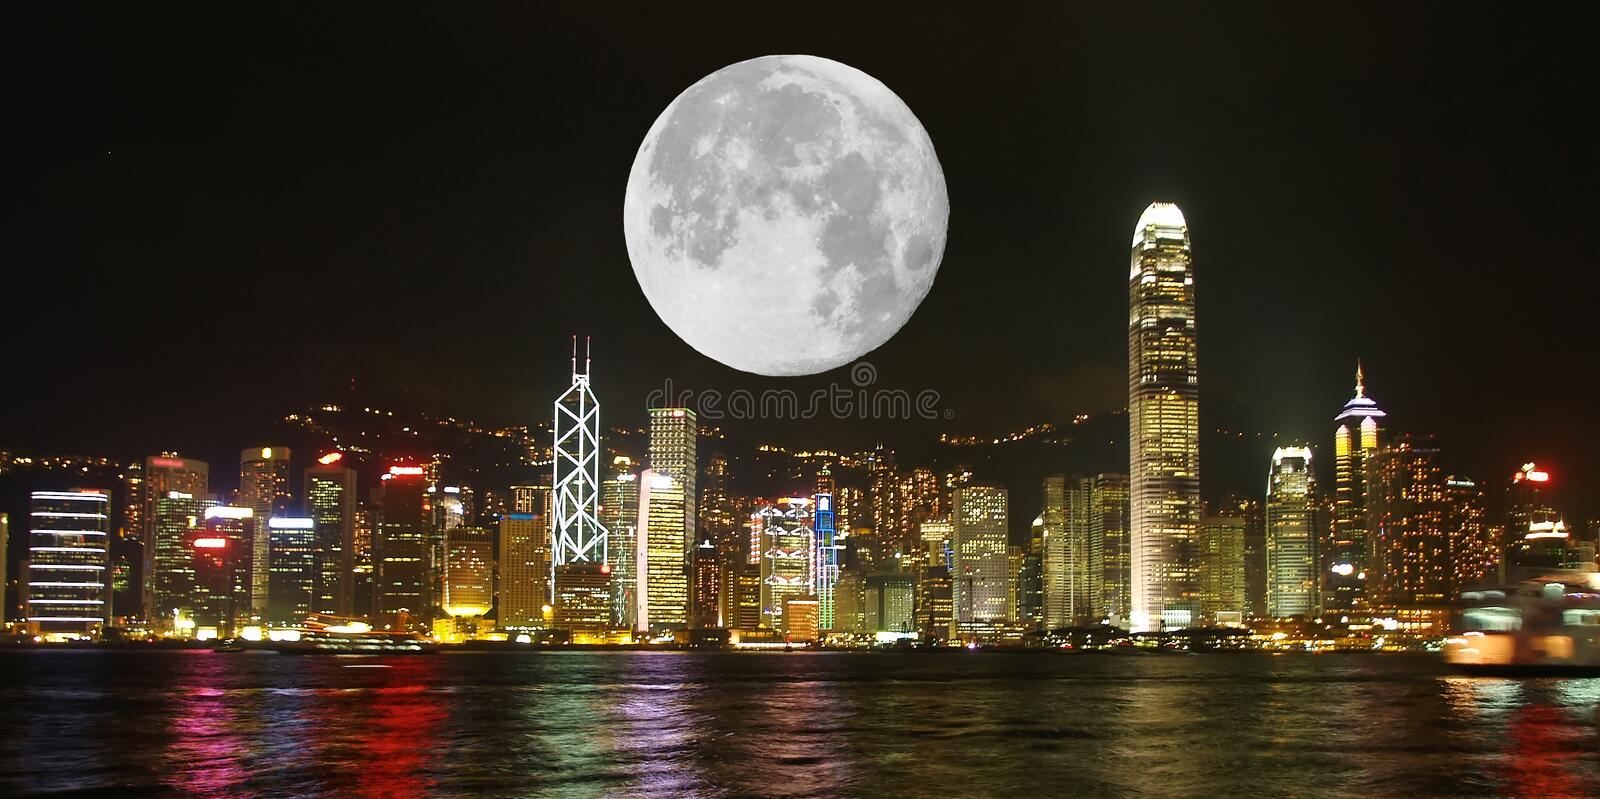 The Hong Kong Skyline and super moon. Hong Kong Skyline at night stock photo